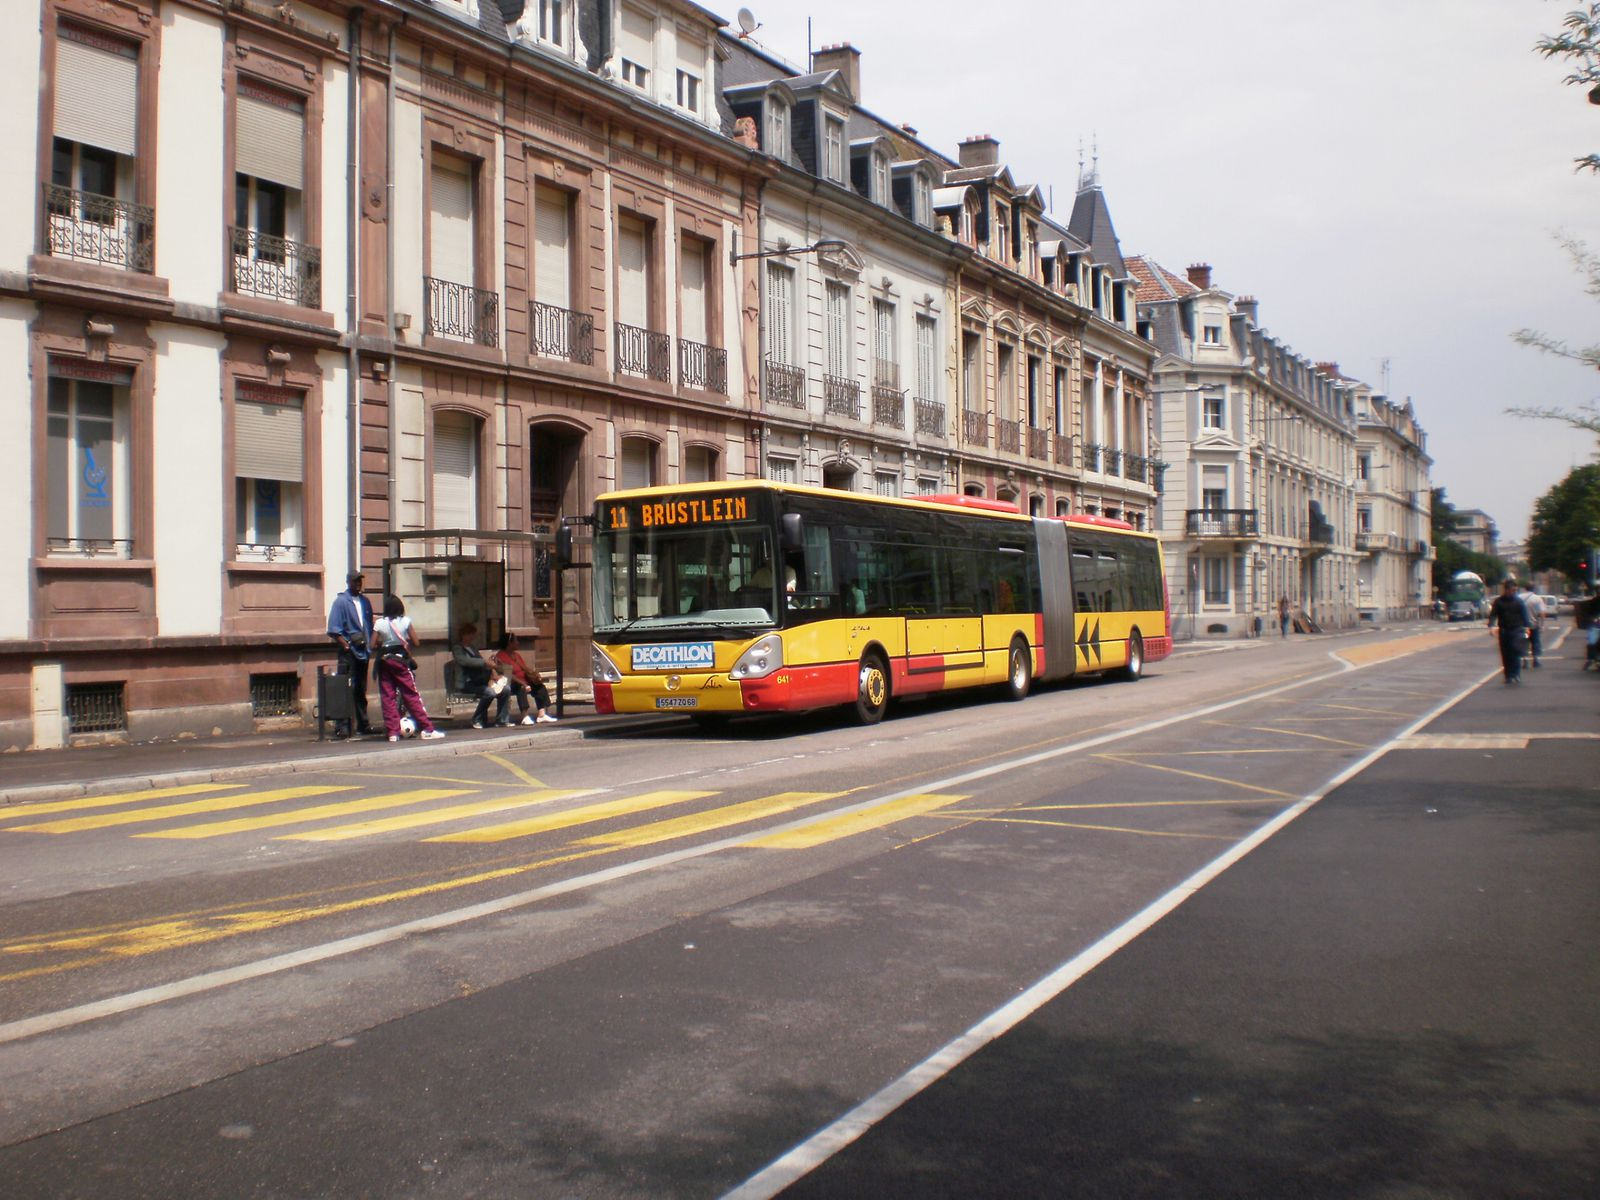 ligne 11 austerlitz brustlein bus et tram mulhouse. Black Bedroom Furniture Sets. Home Design Ideas